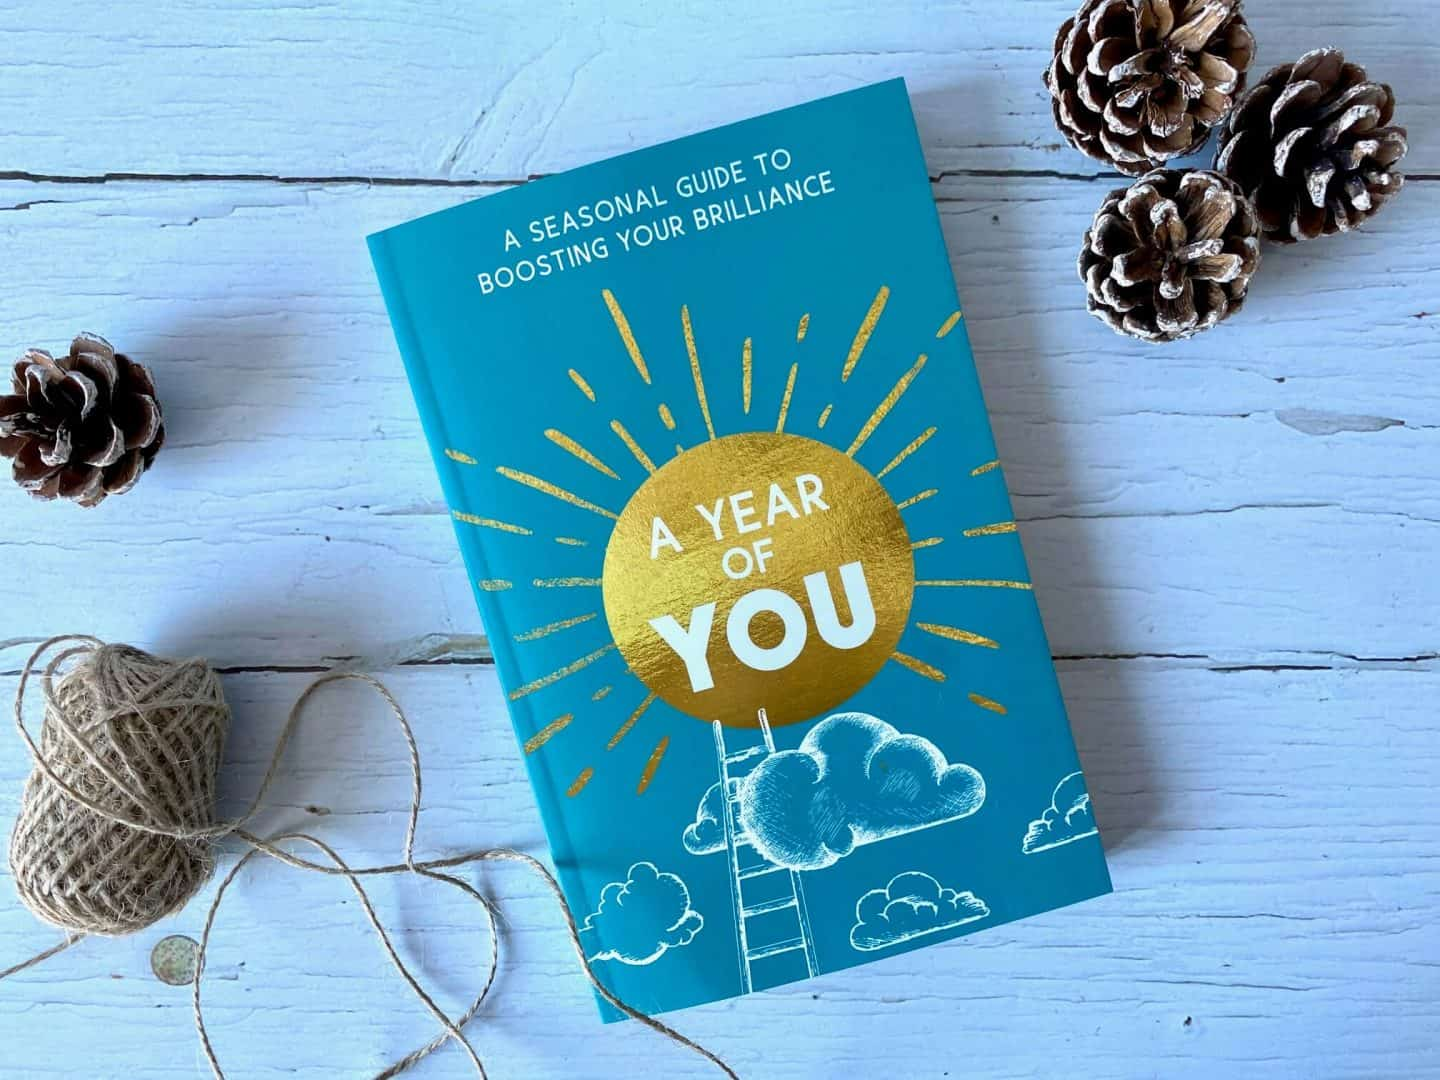 A Year of You